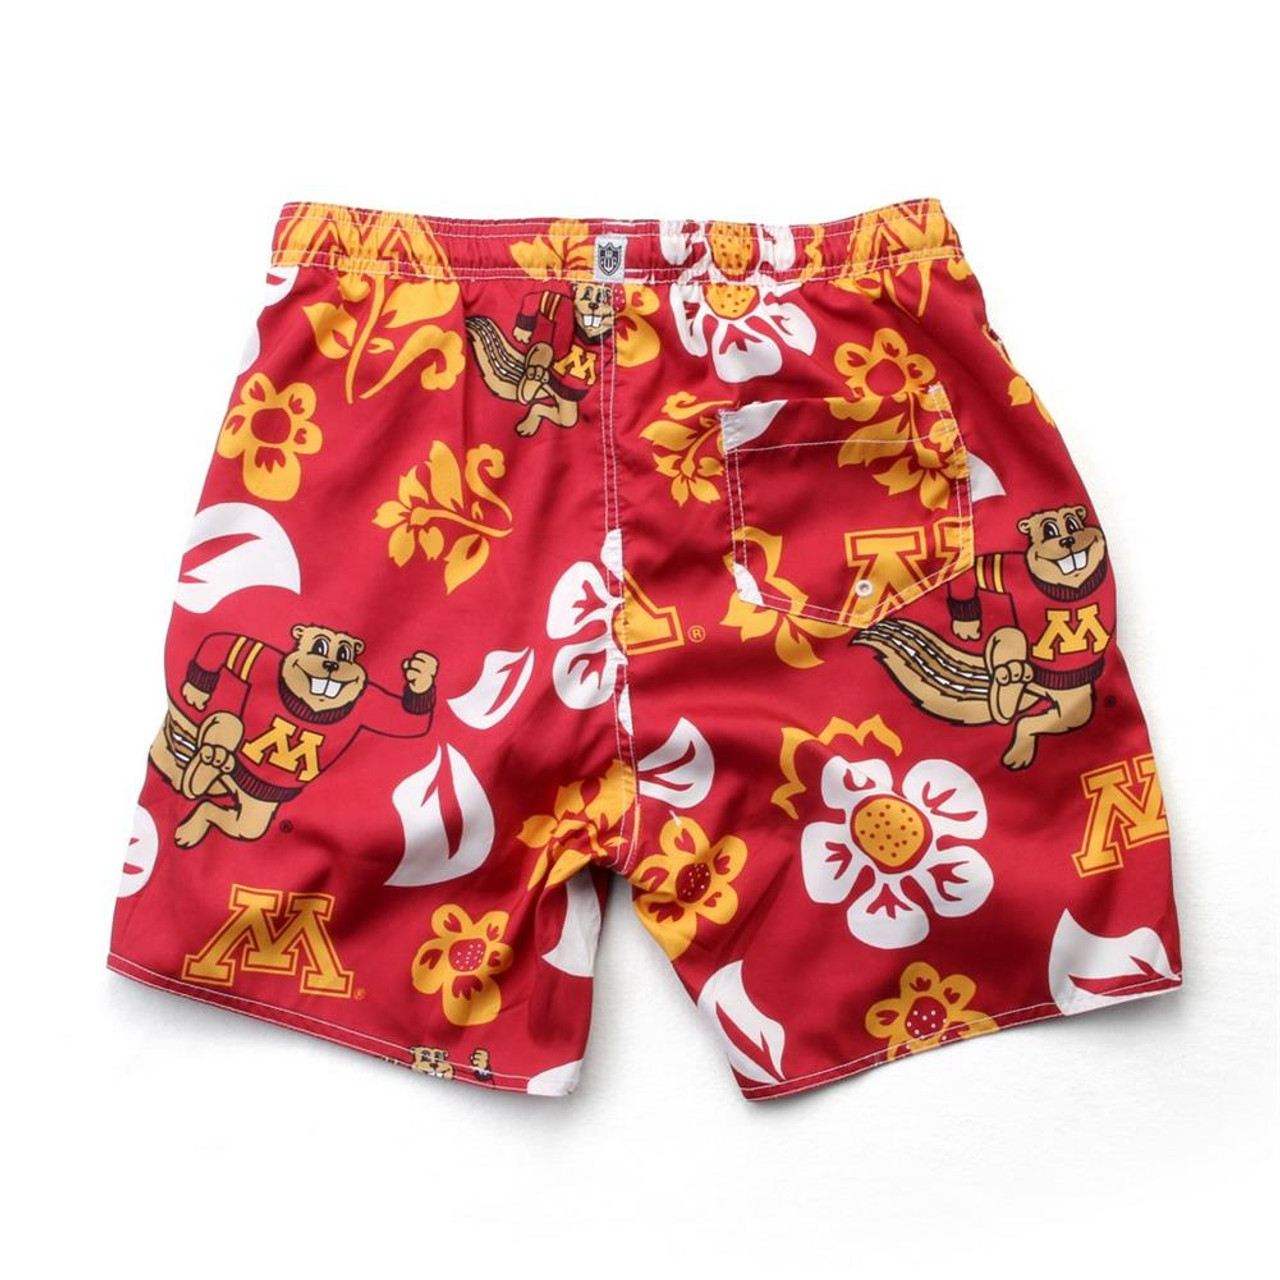 Men's Minnesota Golden Gophers Swim Trunks Floral Swim Shorts